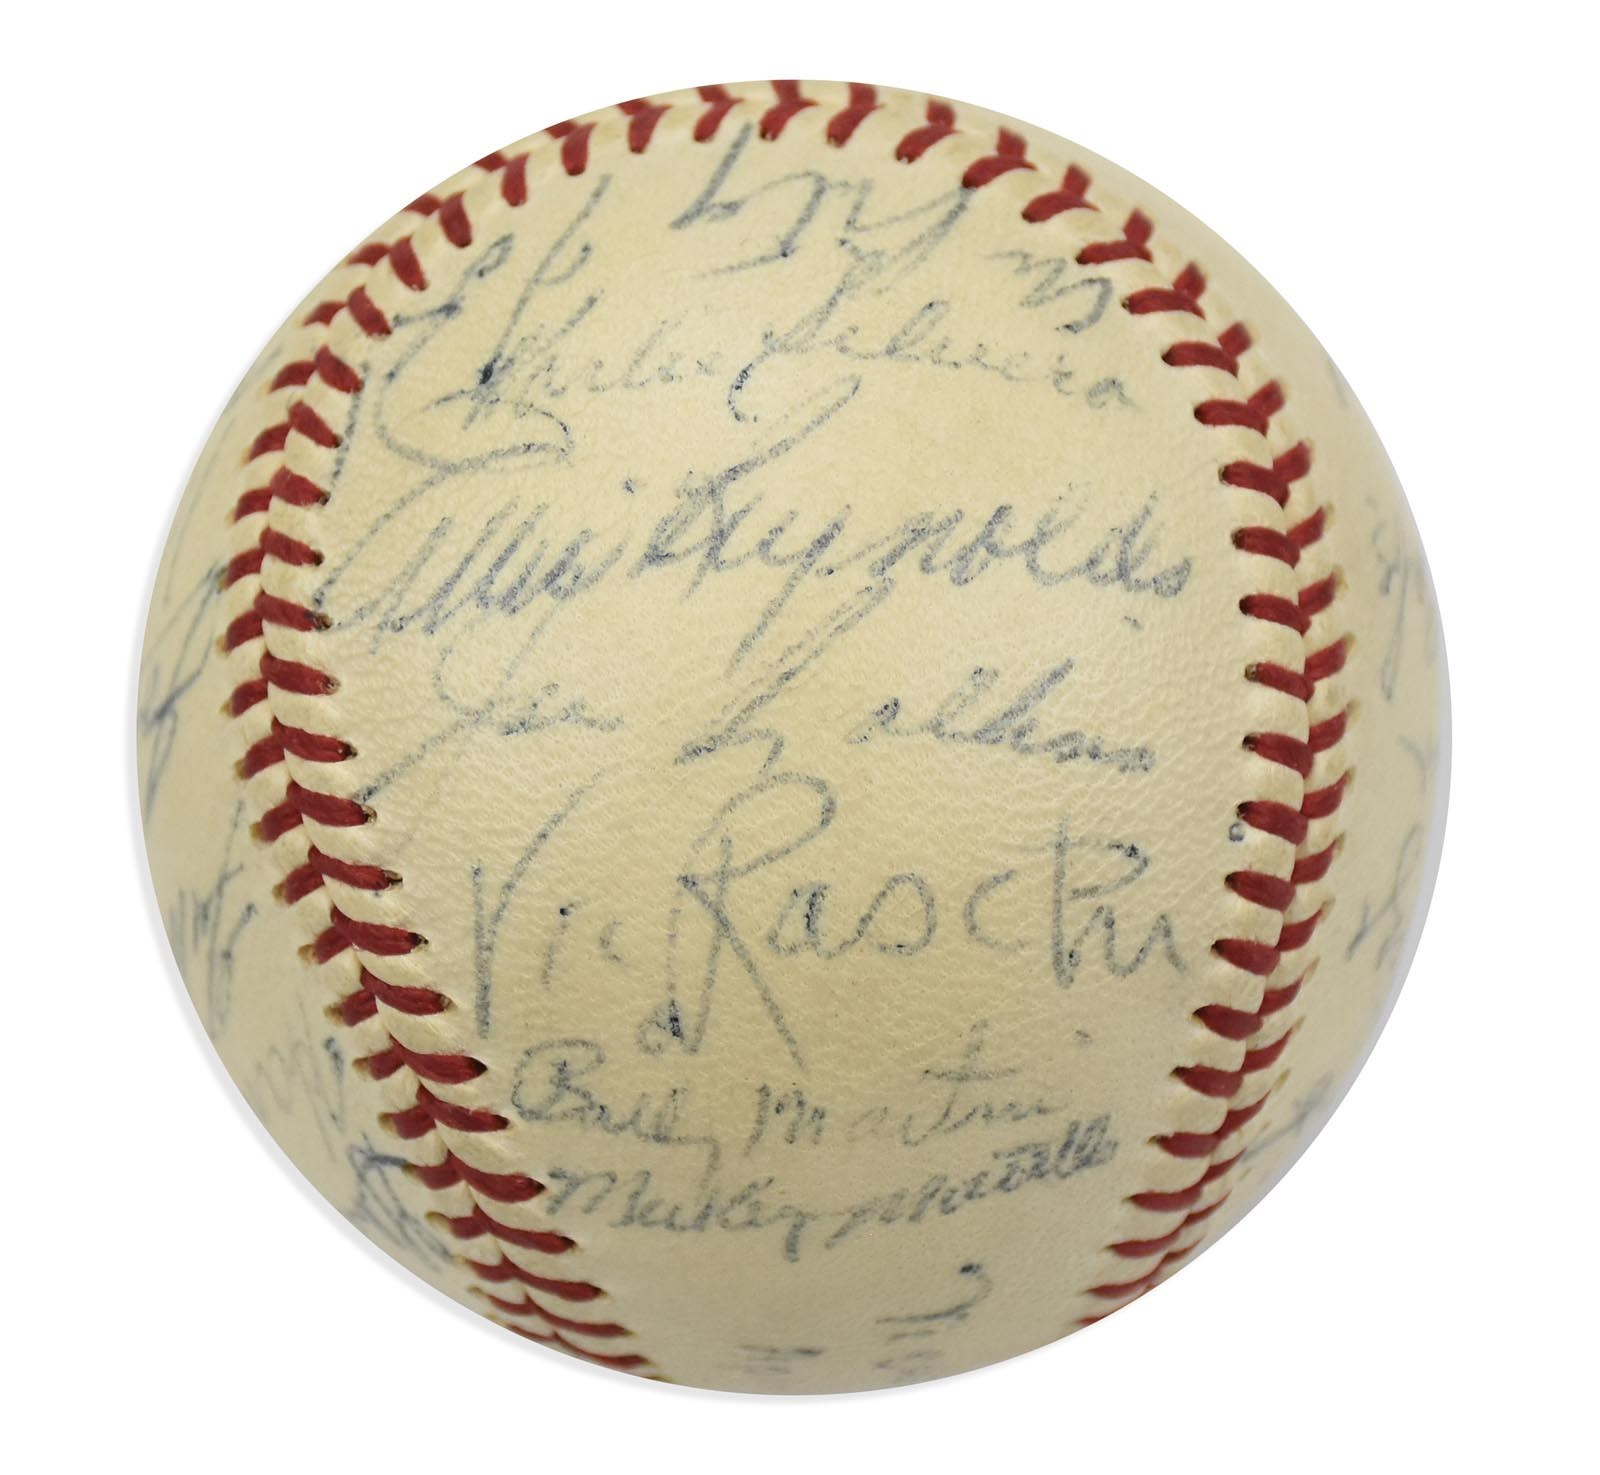 High Grade 1953 World Champion New York Yankees Team Signed Baseball (PSA)